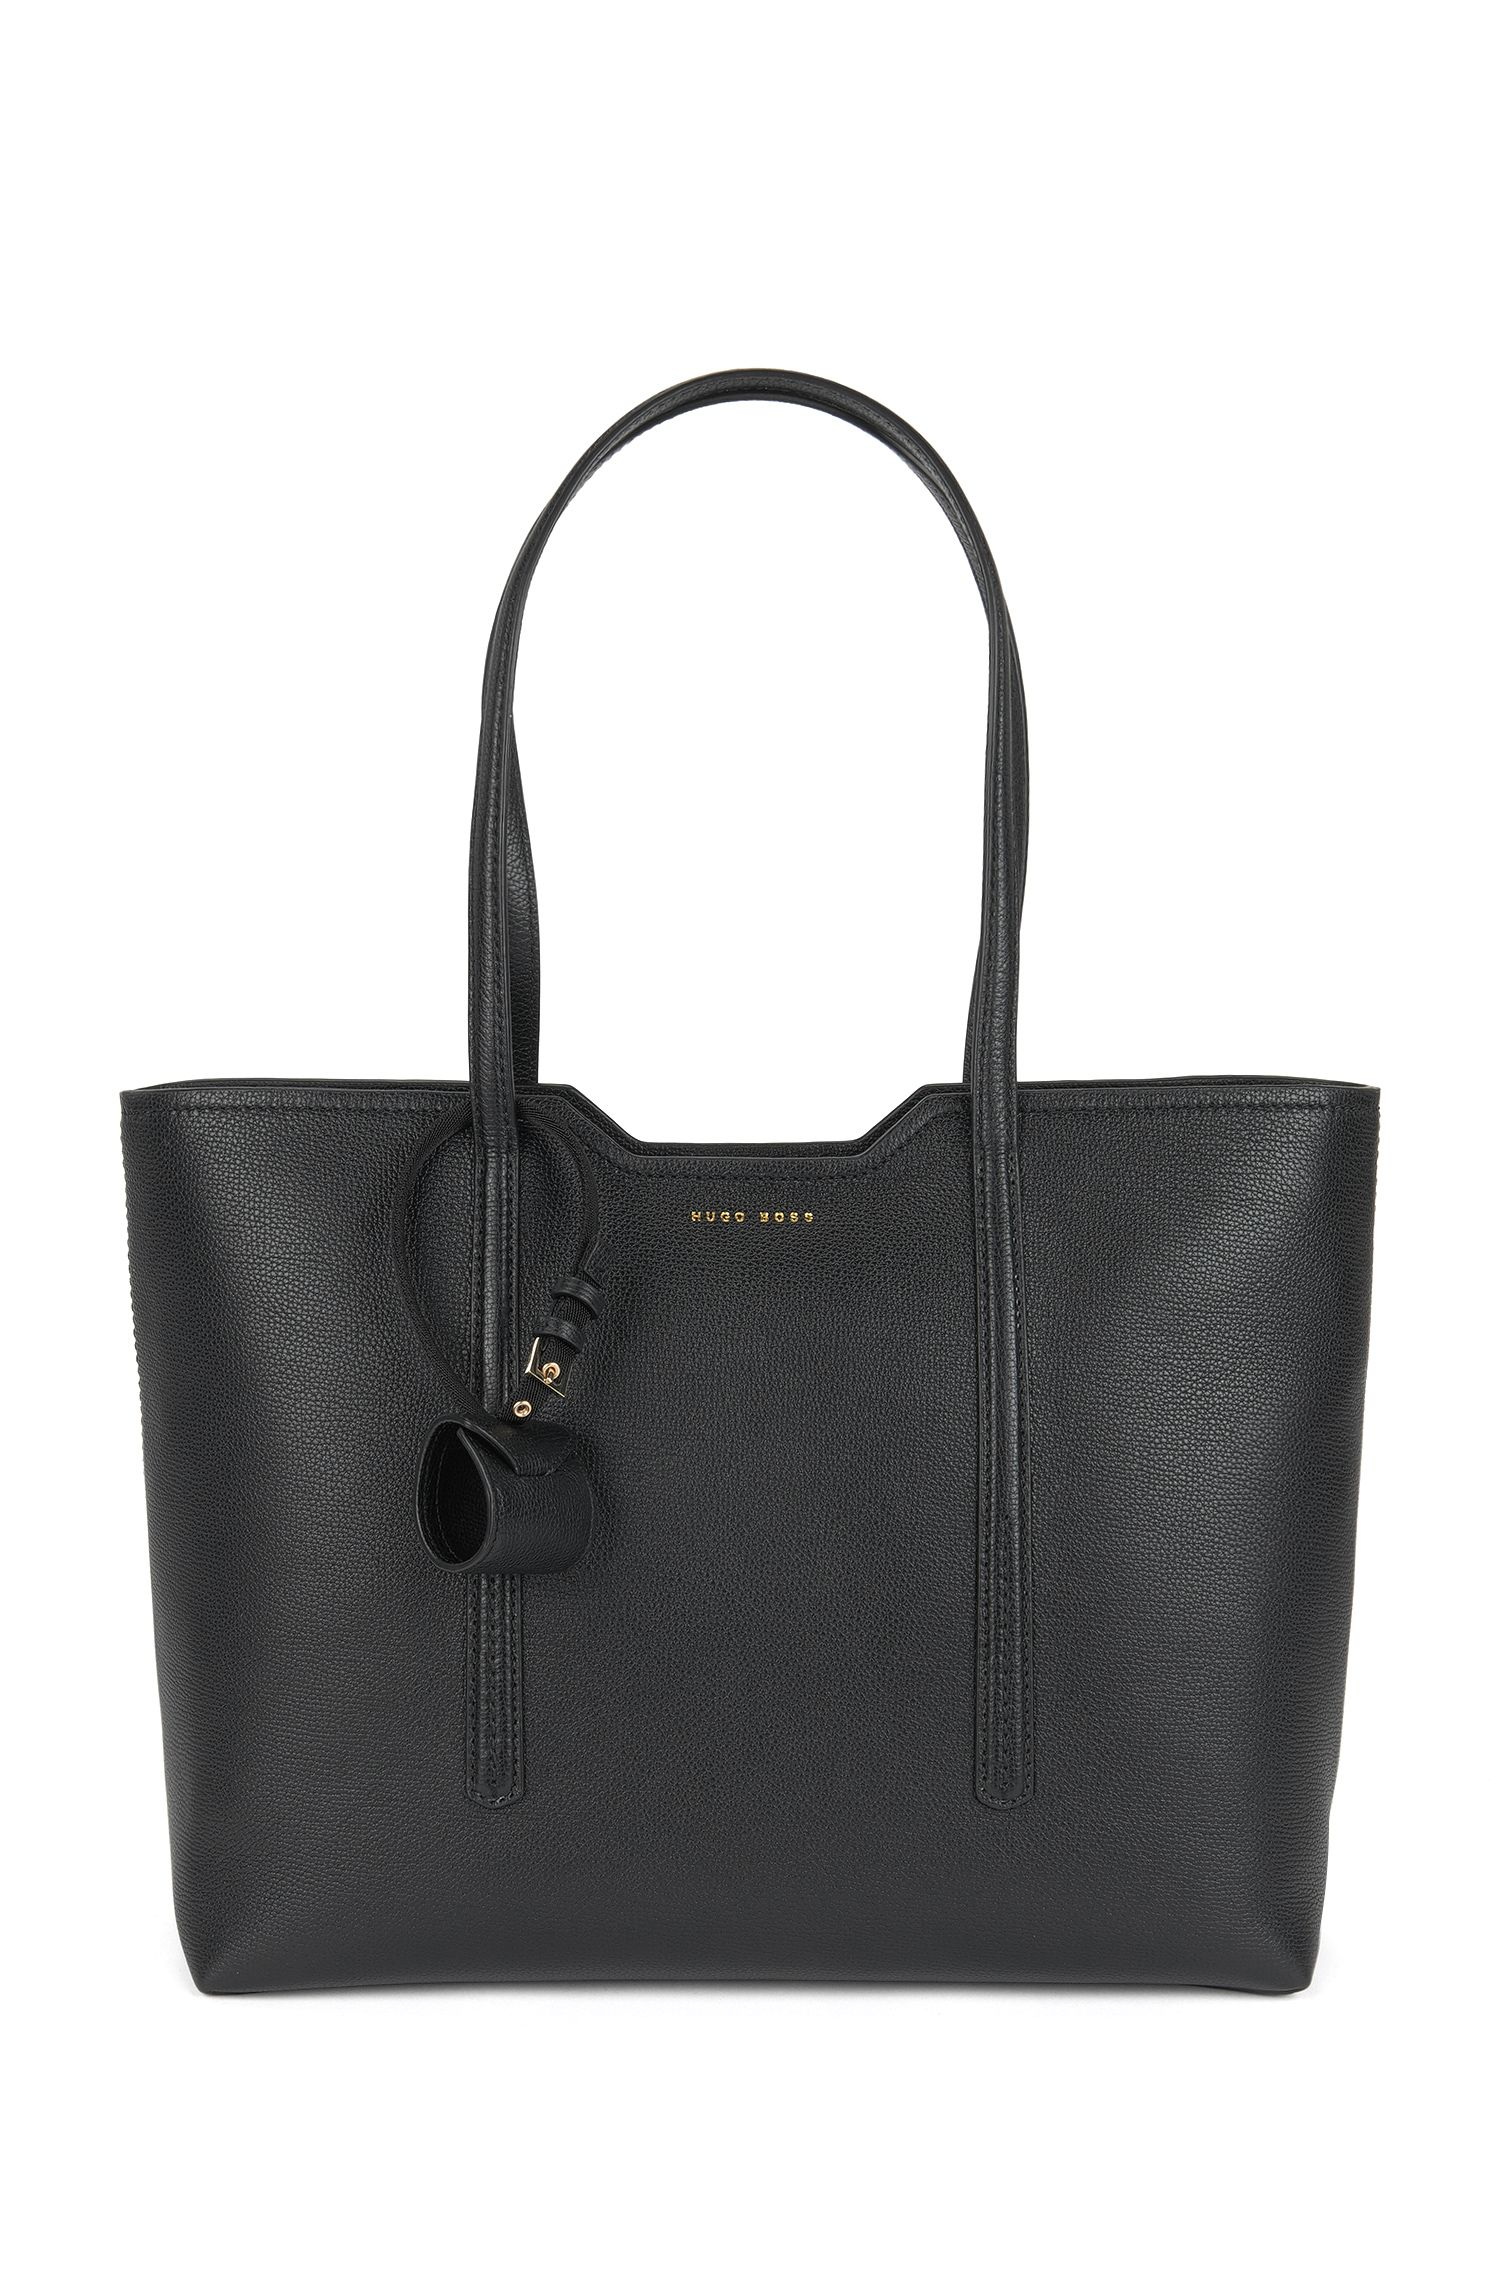 Borsa shopper in pelle italiana